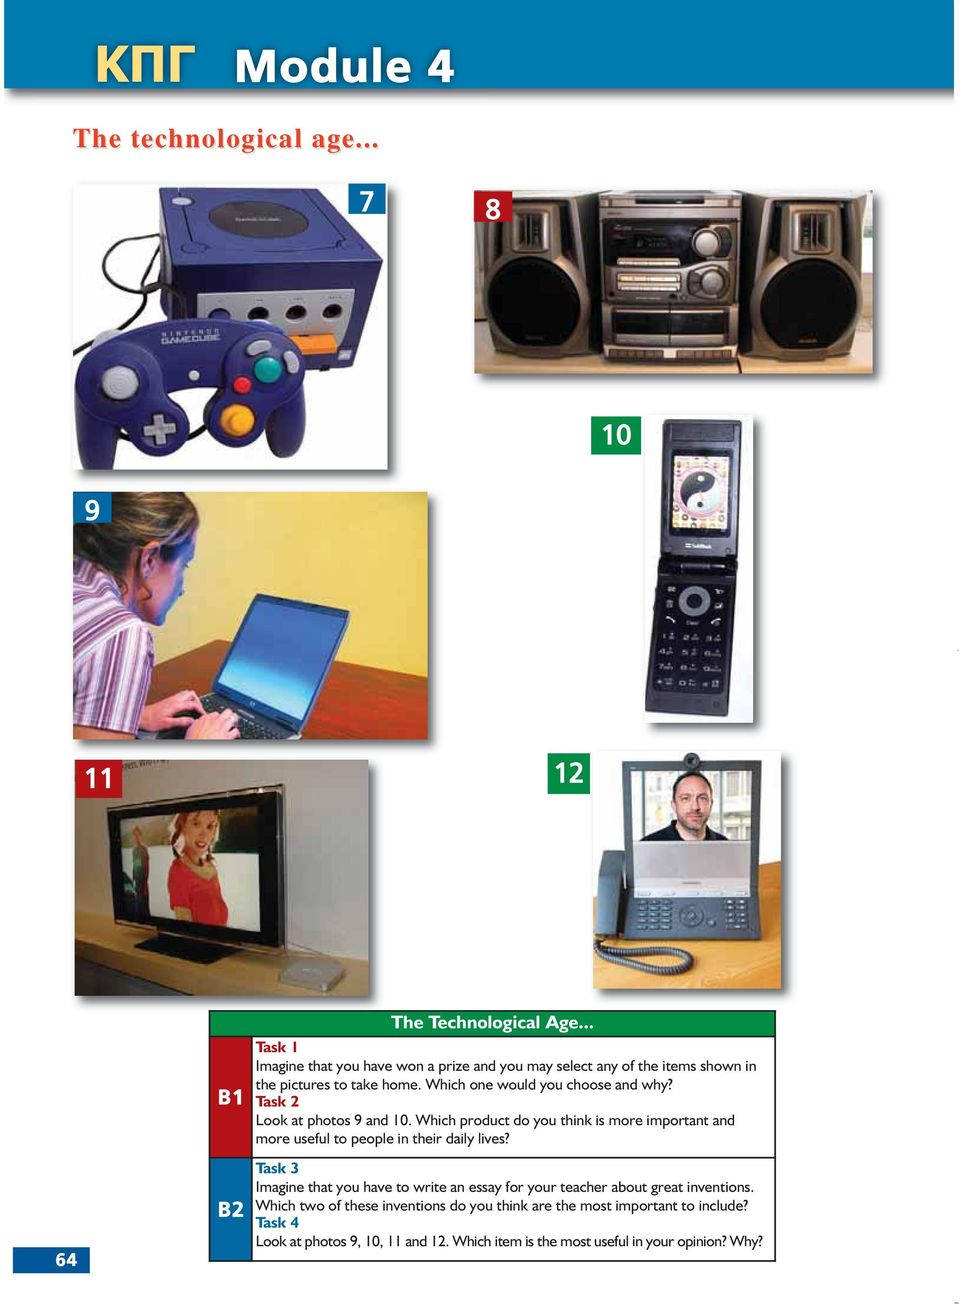 Task 2 Look at photos 9 and 10. Which product do you think is more important and more useful to people in their daily lives?